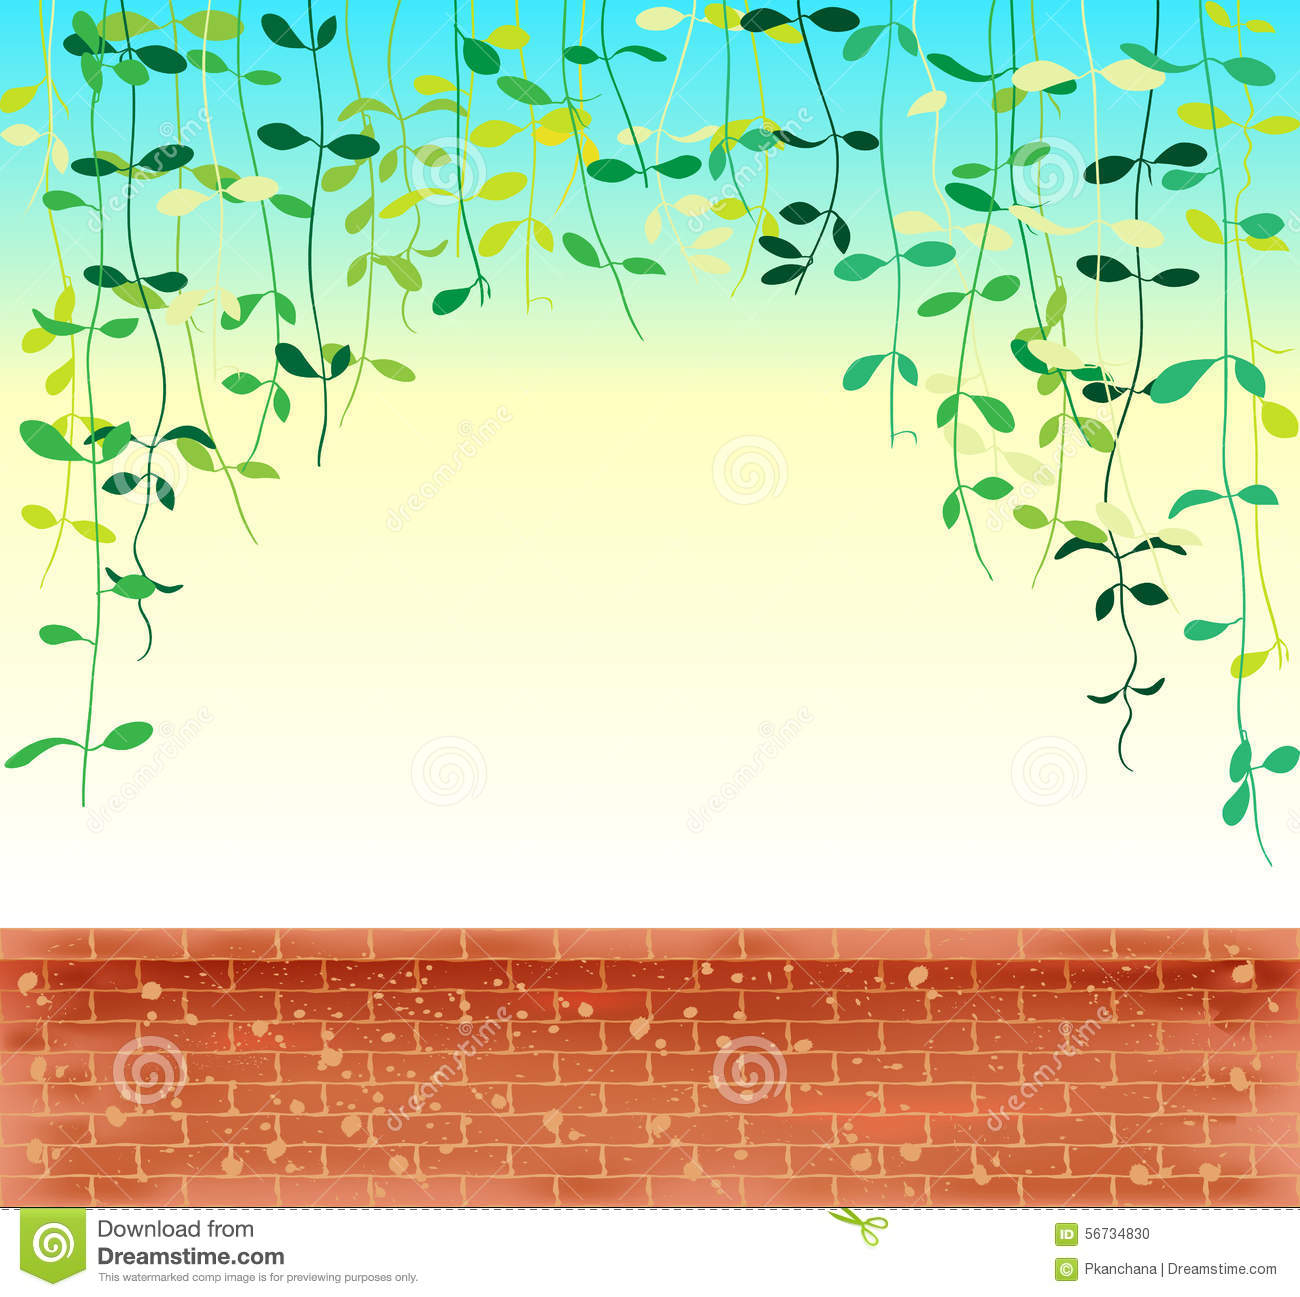 Charming Creeper Wall Decoration Pictures Inspiration - The Wall ...